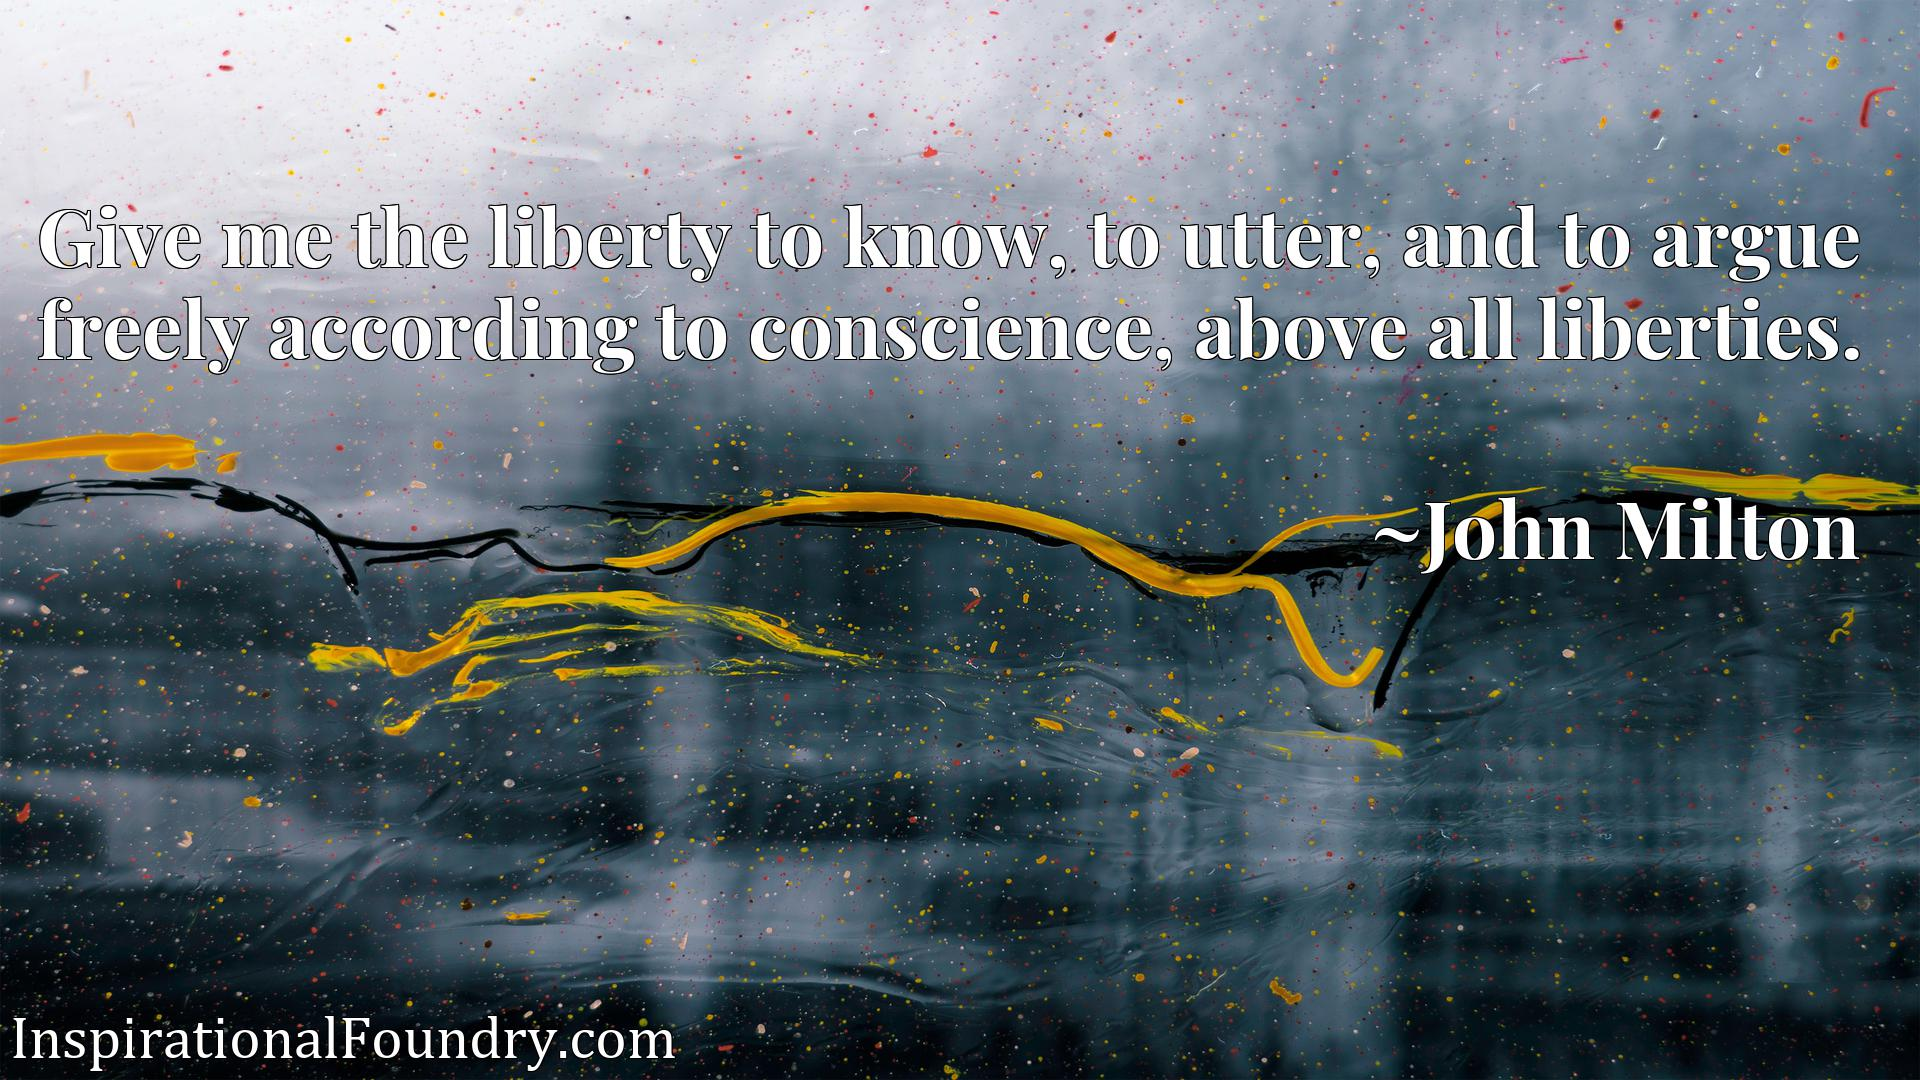 Quote Picture :Give me the liberty to know, to utter, and to argue freely according to conscience, above all liberties.